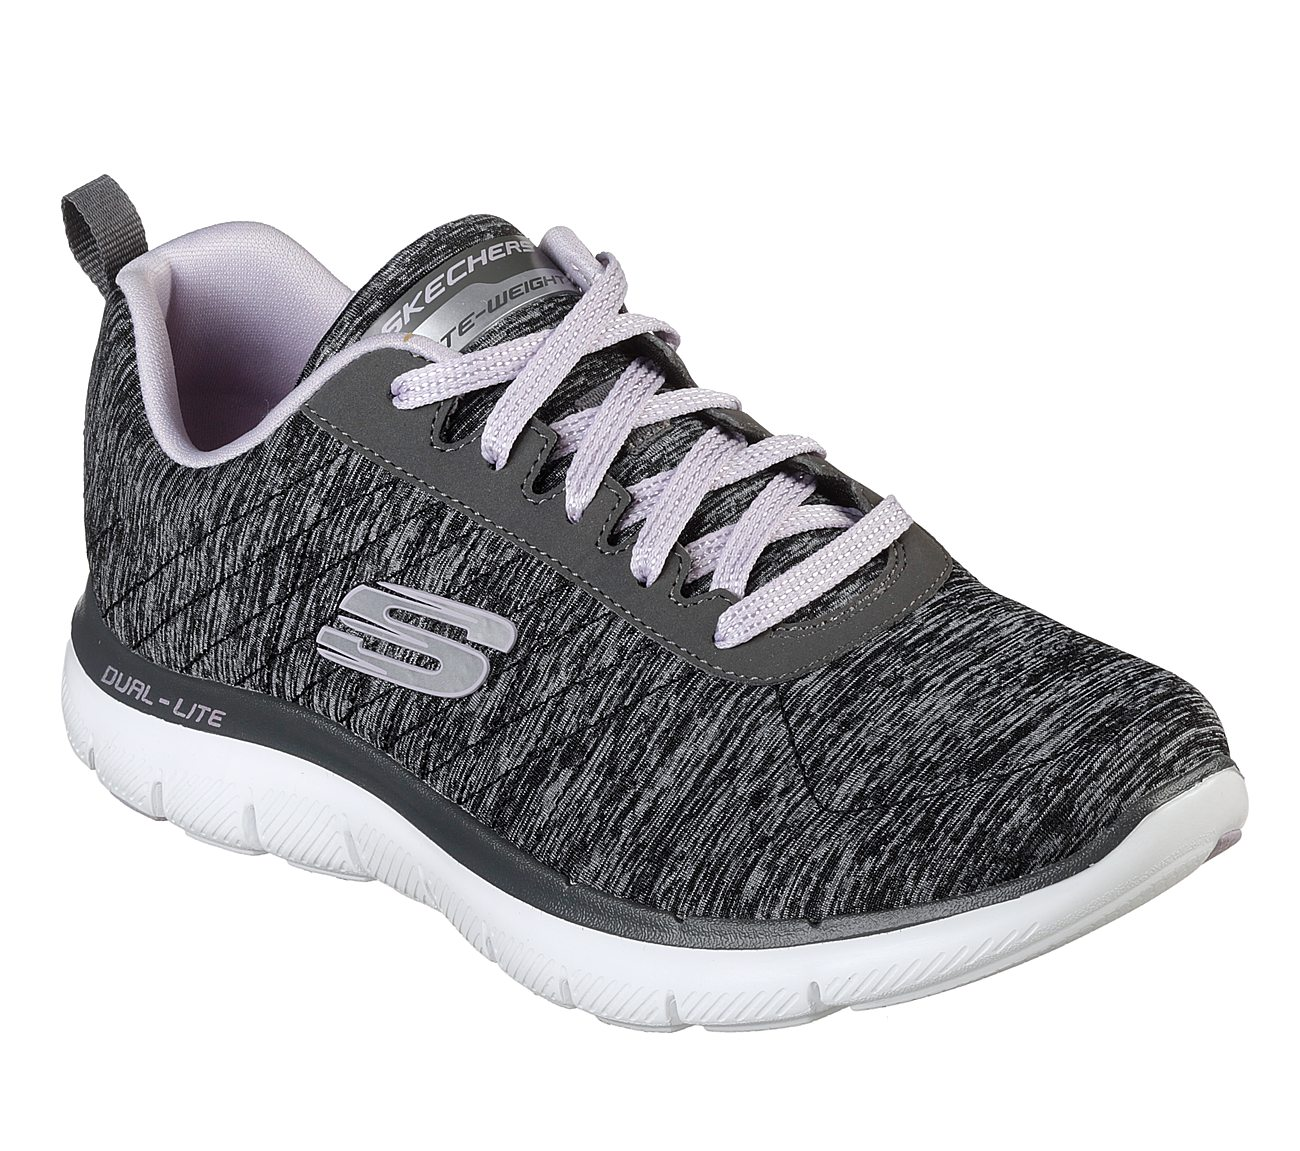 14741176e765 Buy SKECHERS Flex Appeal 2.0 Flex Appeal Shoes only  49.00